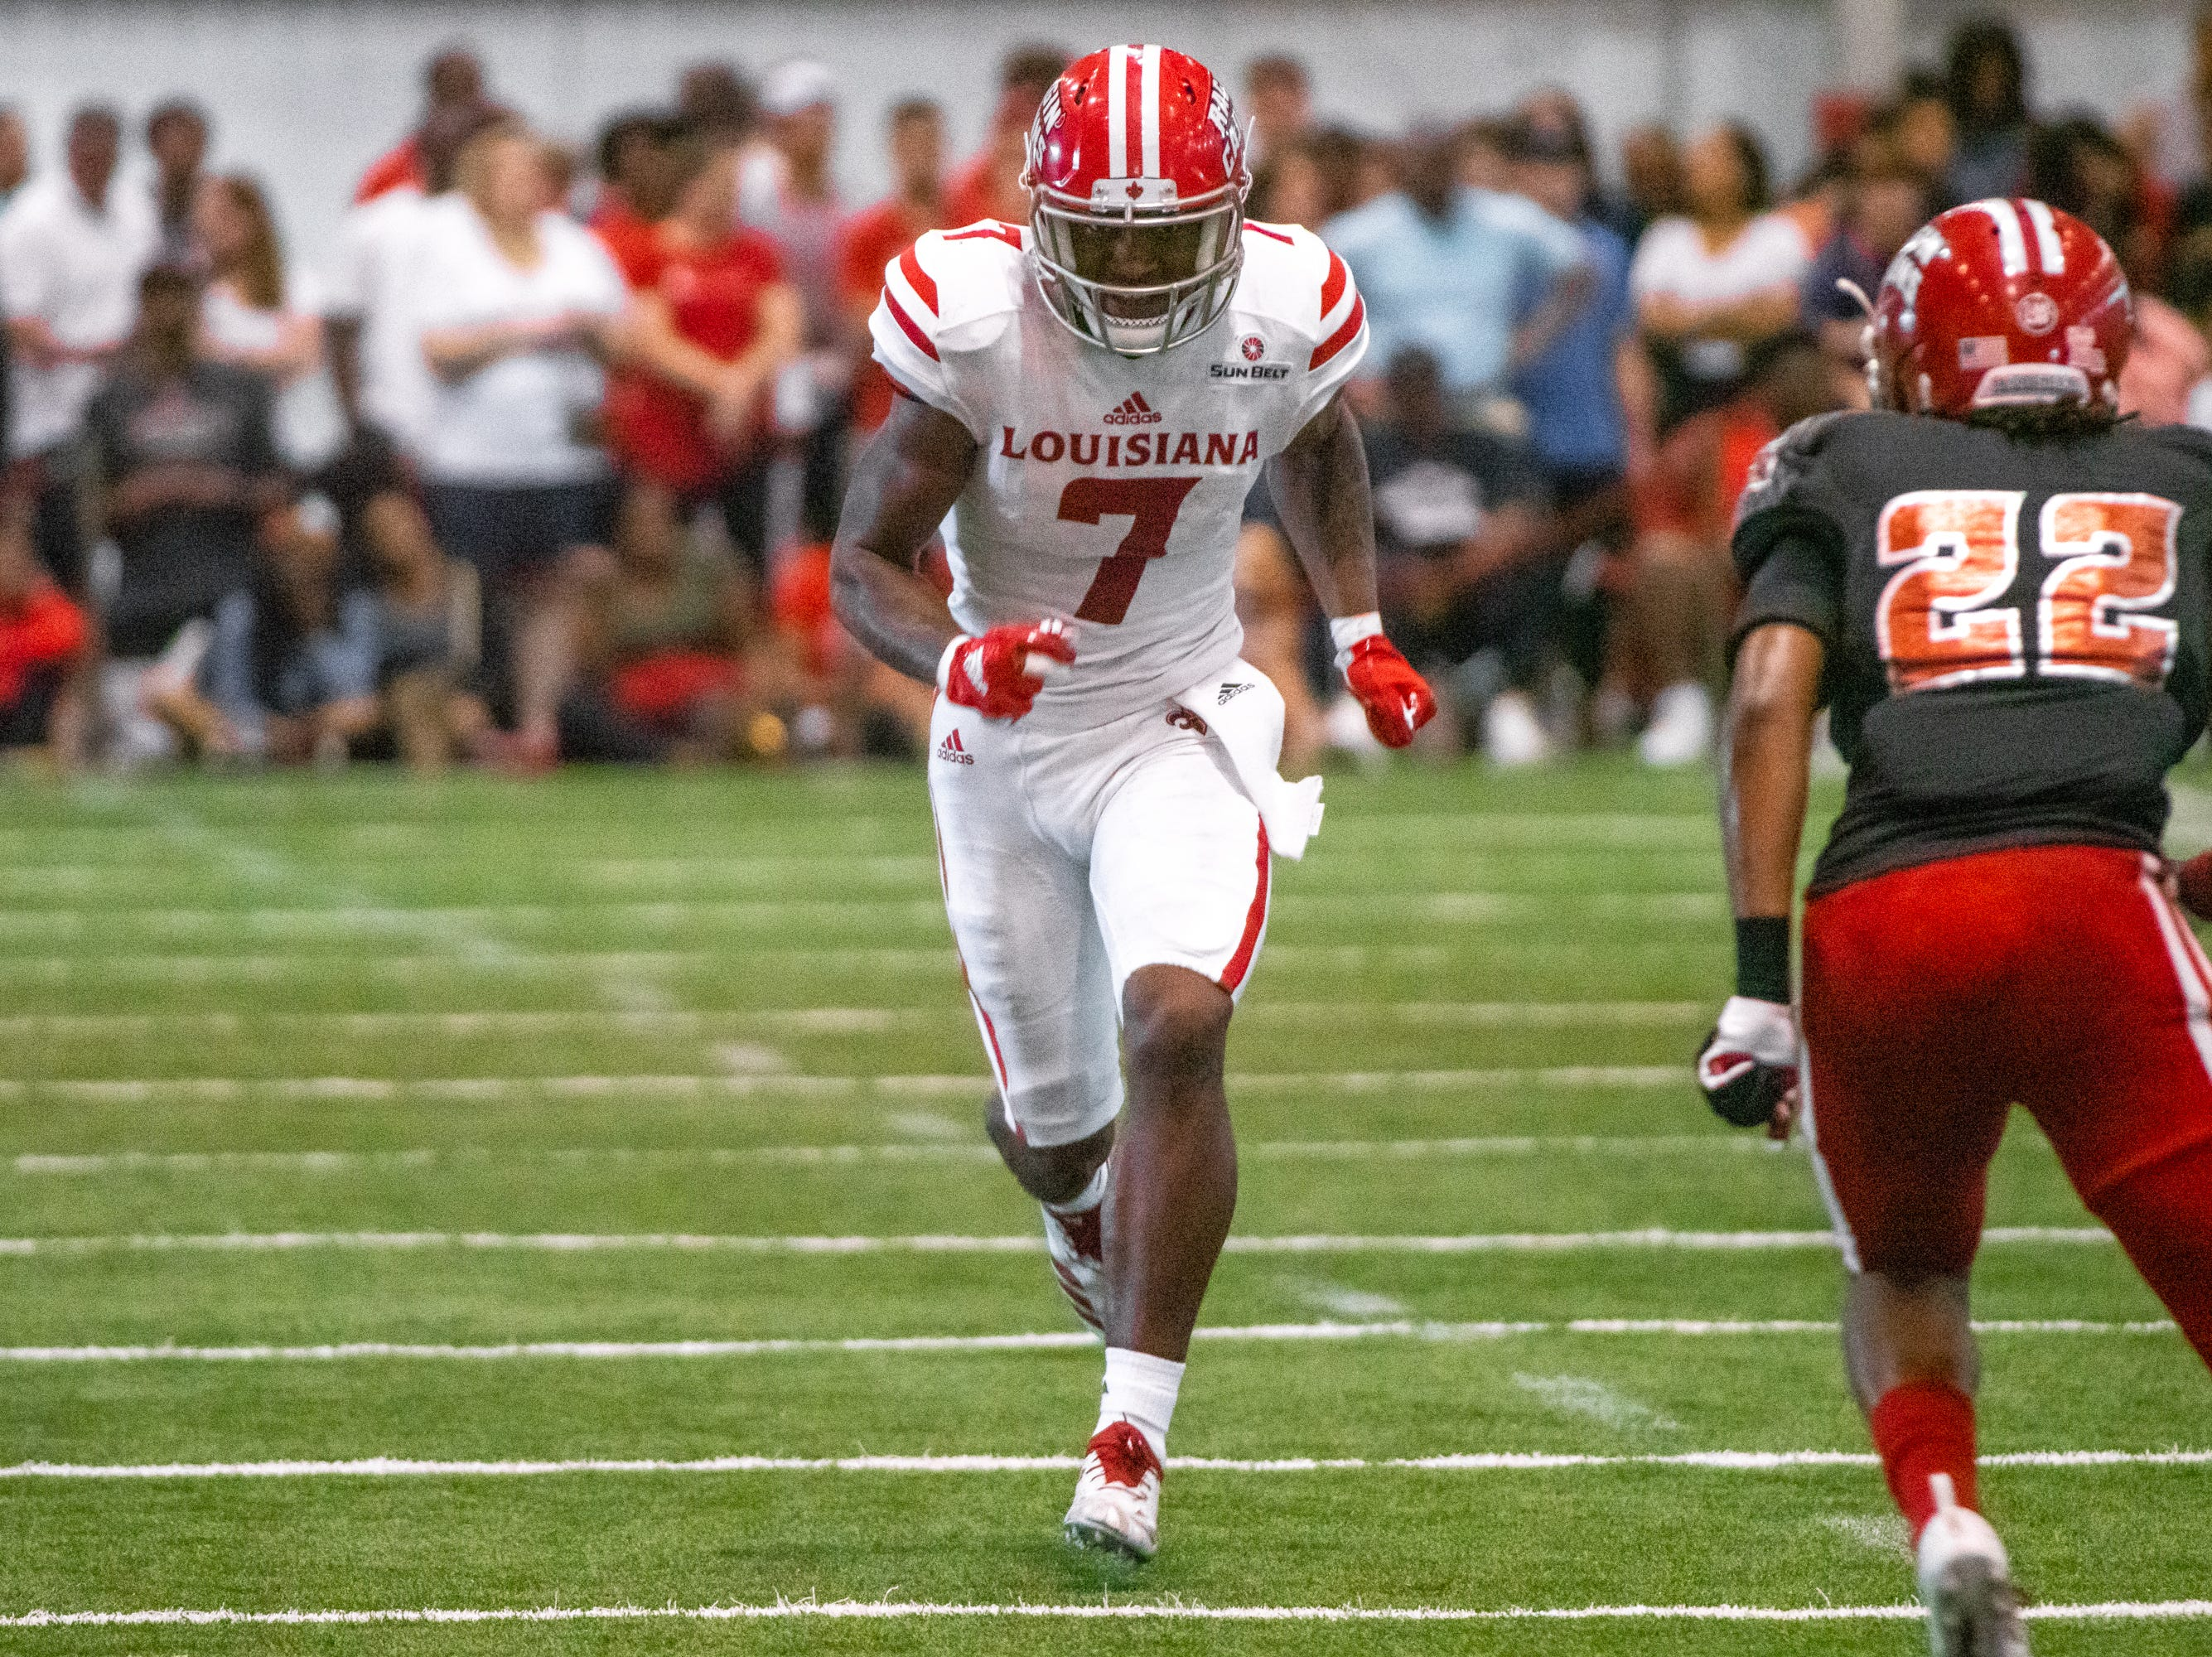 UL's Brian Smith rushes rushes down the field during the play as the Ragin' Cajuns football team plays their annual Spring football game against one another in the Leon Moncla trainig facility on April 13, 2019.